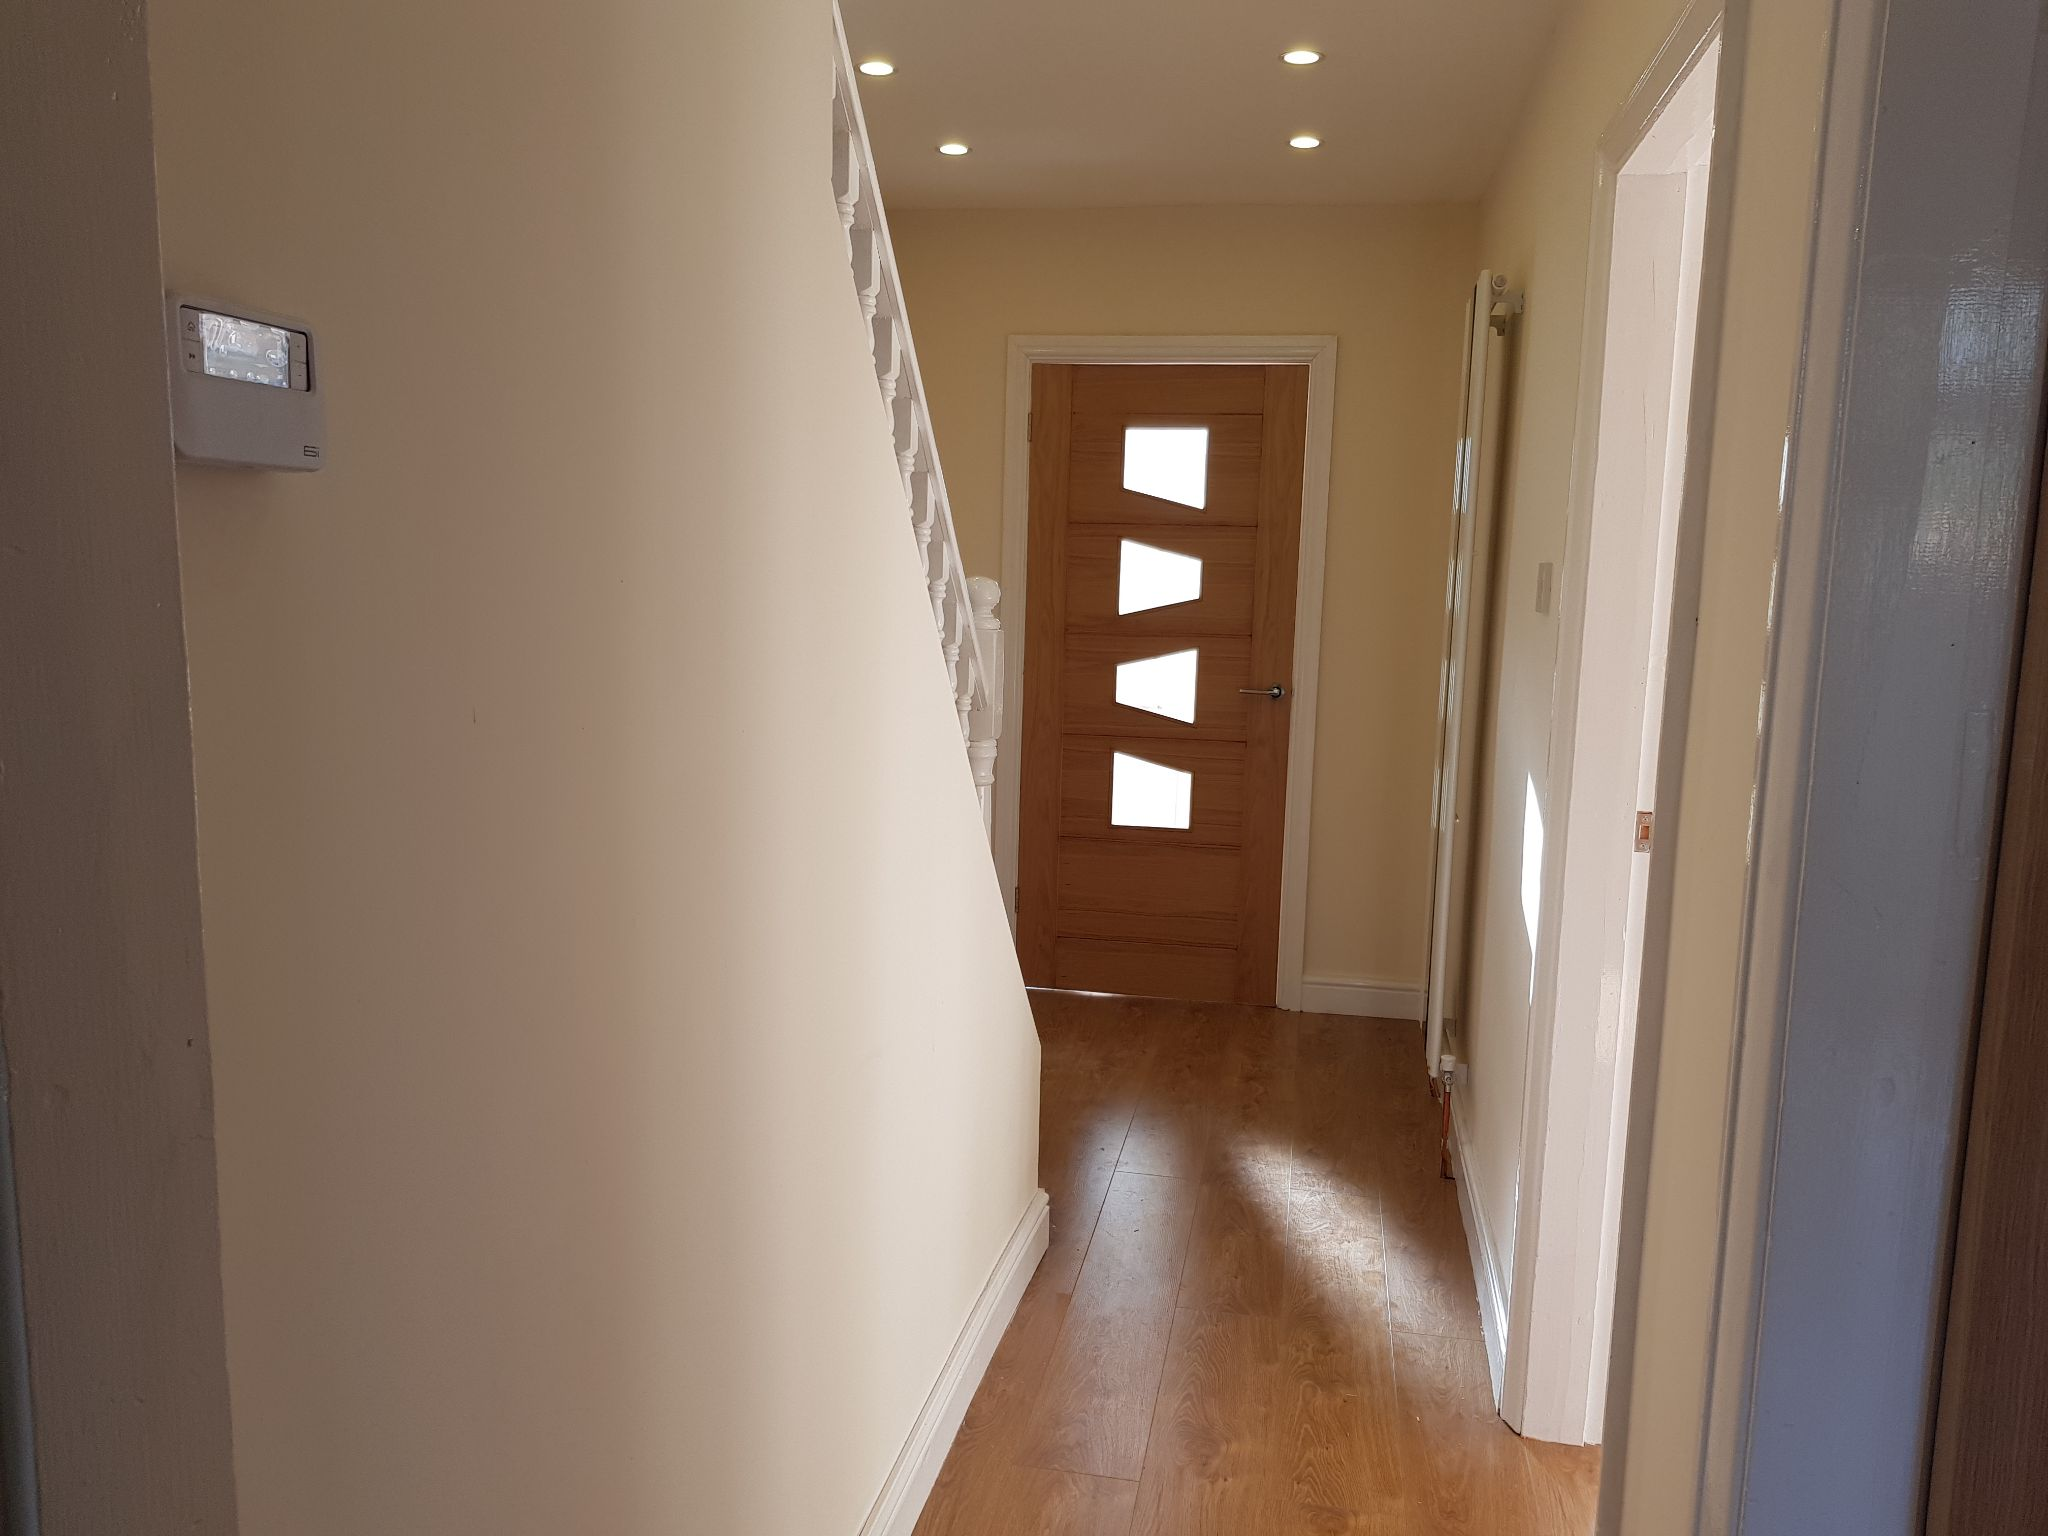 3 Bed Semi-detached House For Sale - Hallway